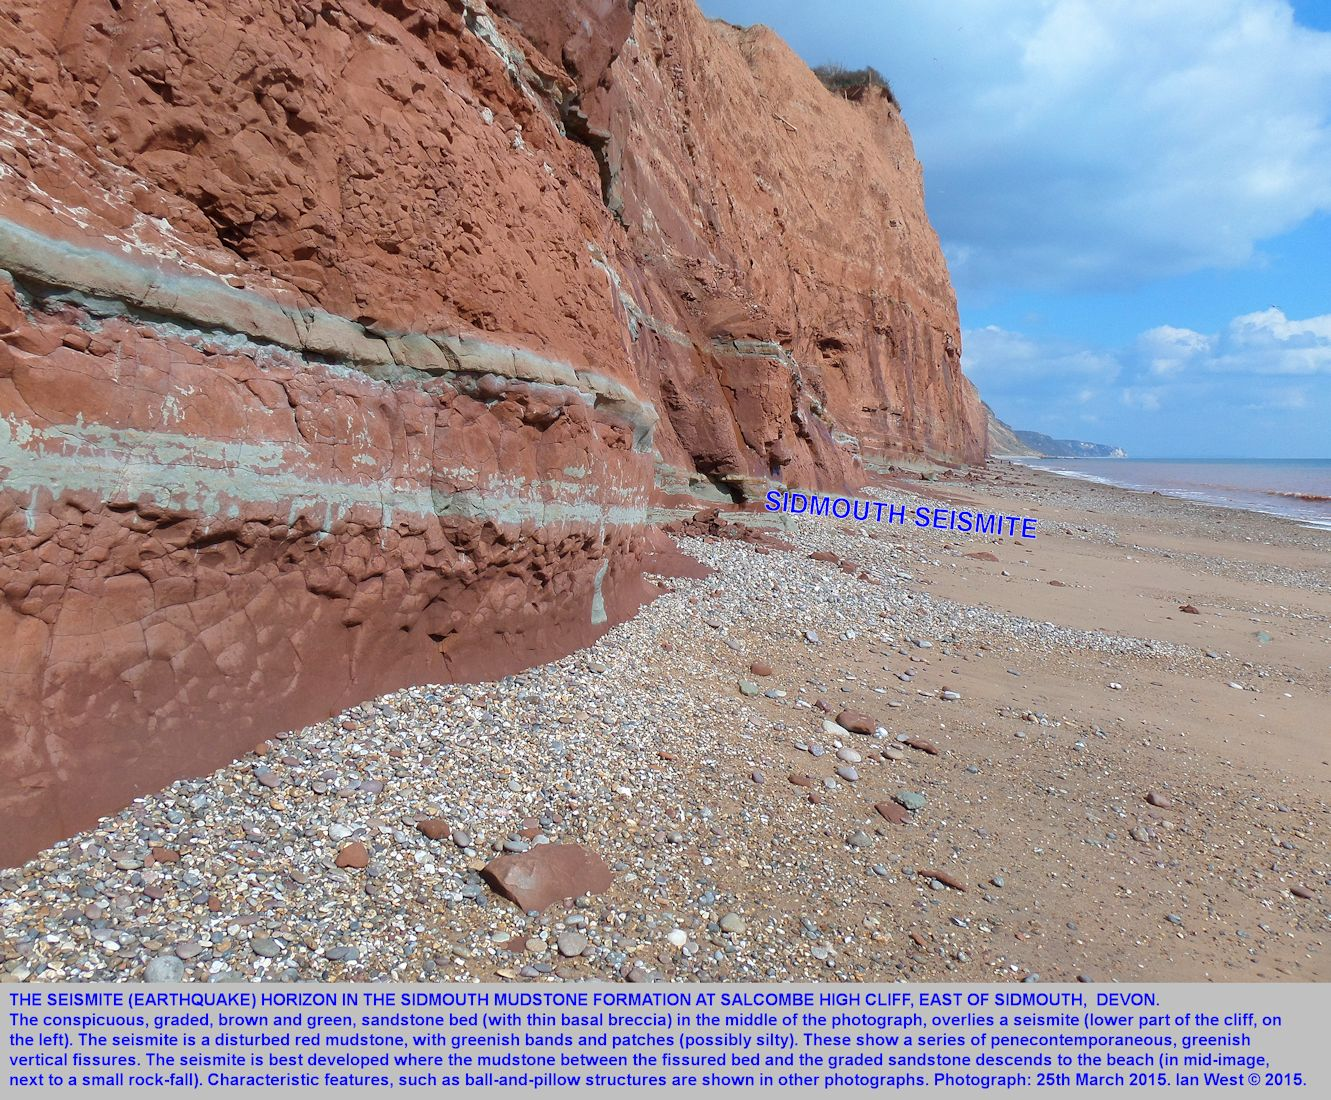 A seismite or earthquake bed in the basal part of the Mercia Mudstone Formation, part of Salcombe-High-Cliff, Sidmouth, Devon, 25th March 2015